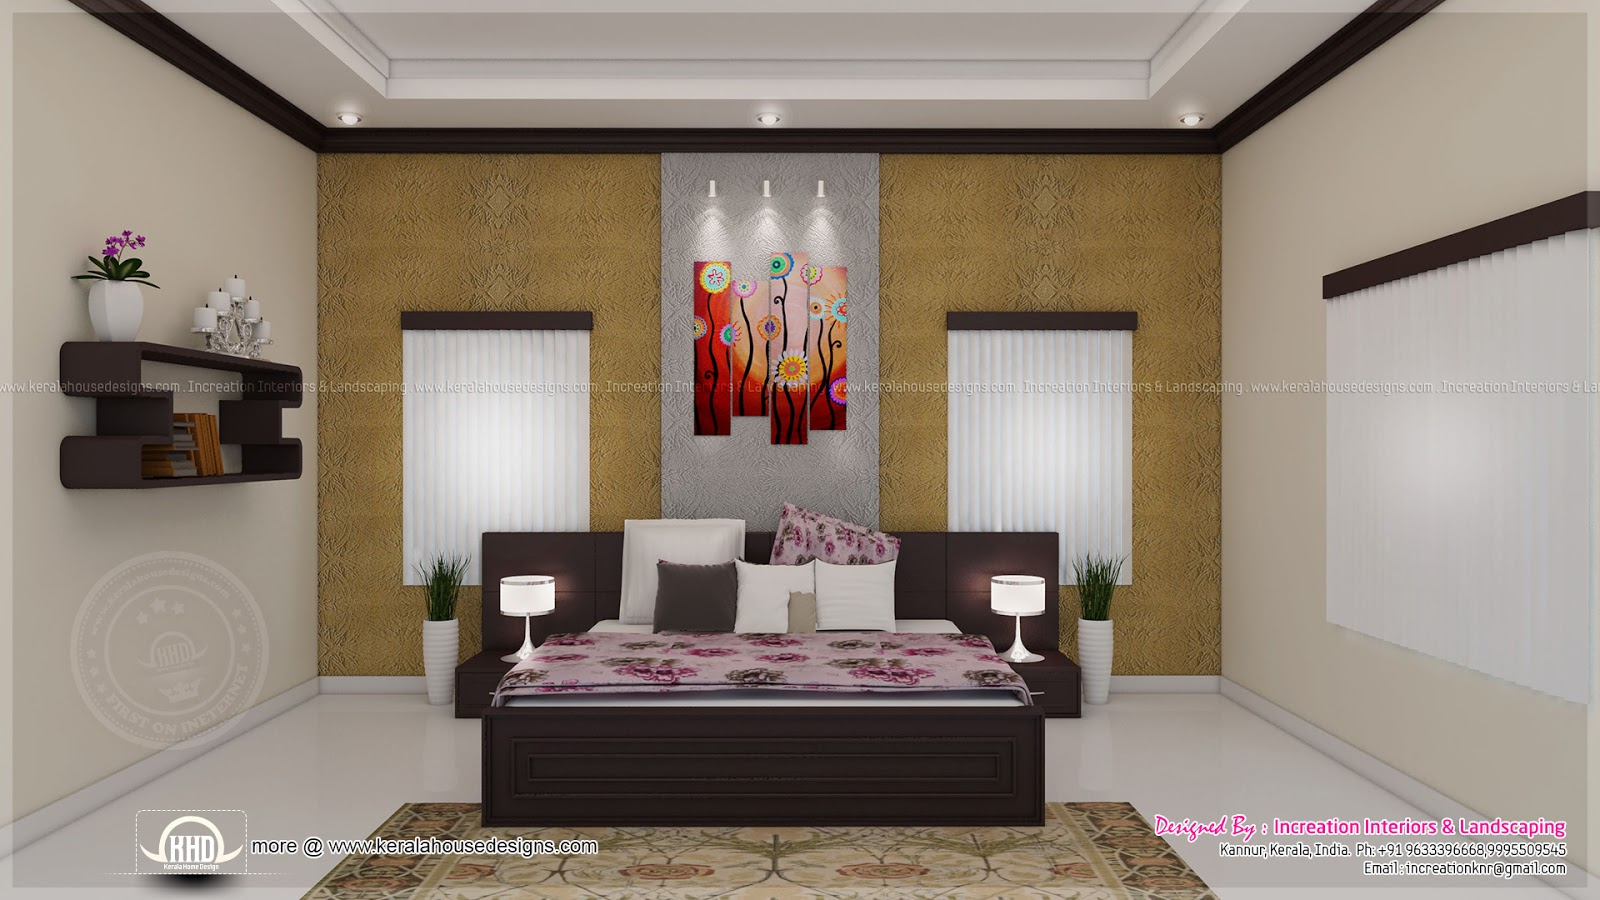 House interior ideas in 3d rendering kerala home design for Bedroom interior pictures